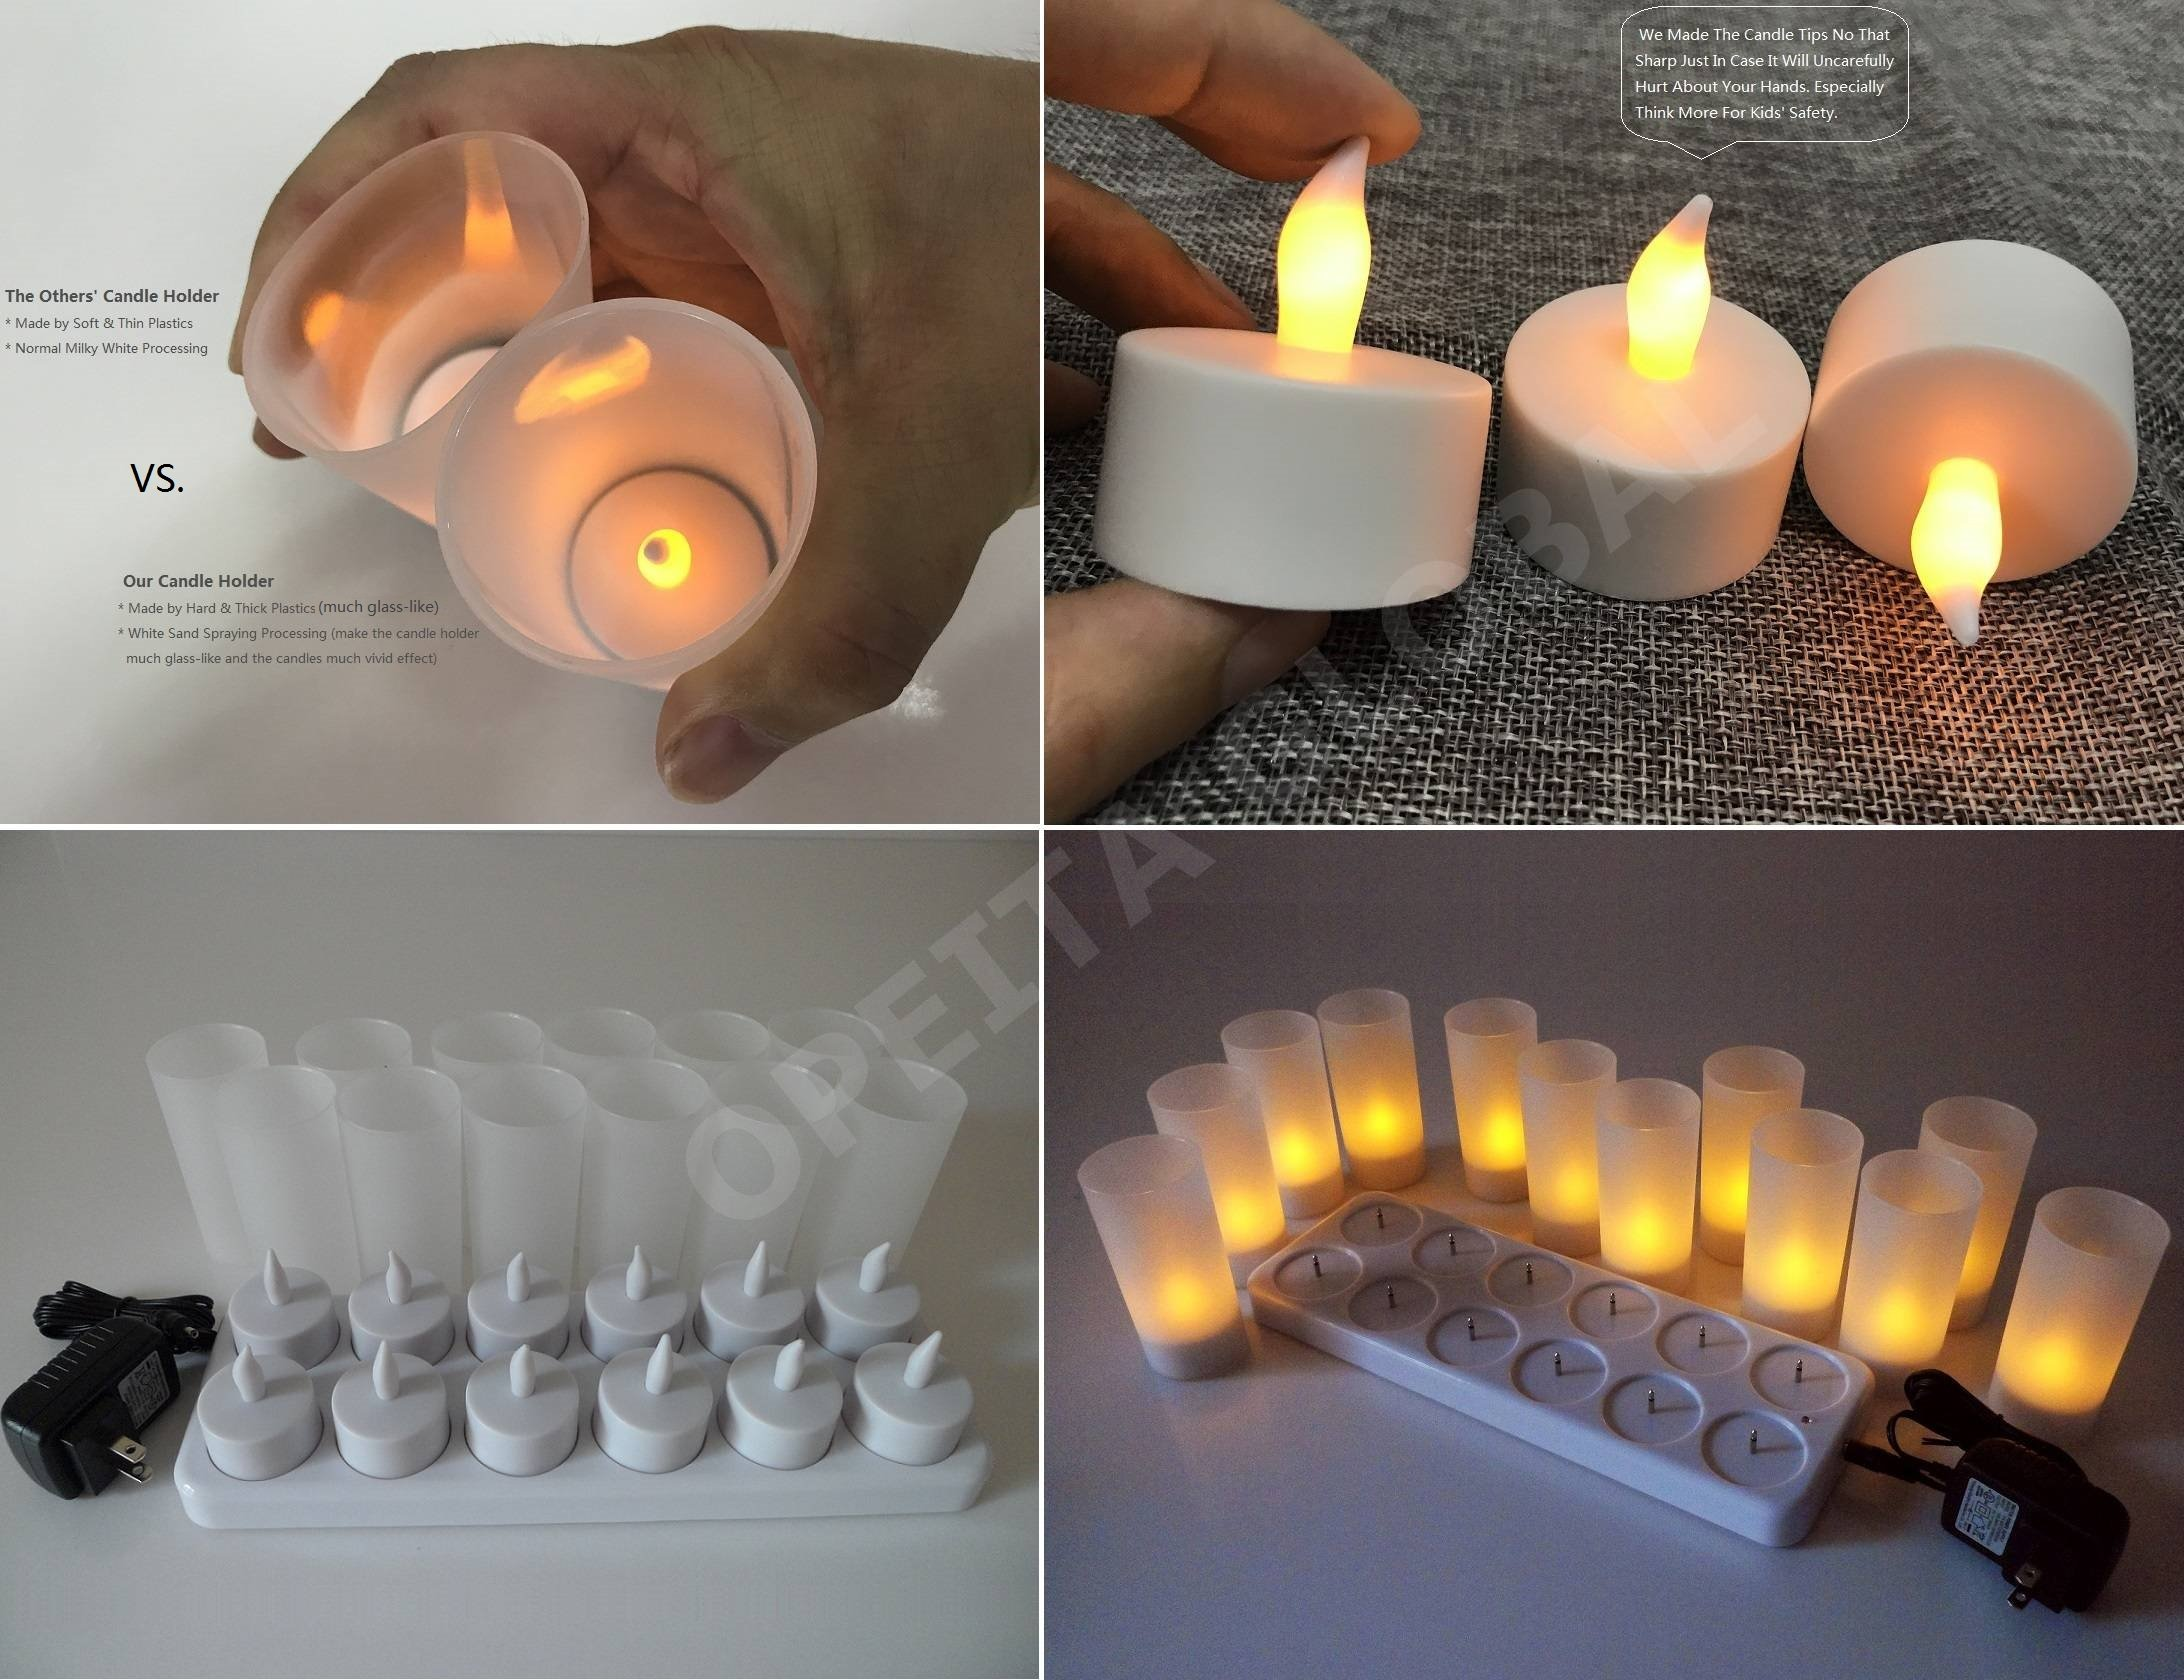 Opeita Rechargeable Candles (12 Pack), Flickering LED Tea Lights,Flameless Candle Light, Premium LEDs In High Brightness, Long Lasting 10~12 hours, Ideal For Restaurants,Coffee Shops,Hotel and Home by Opeita